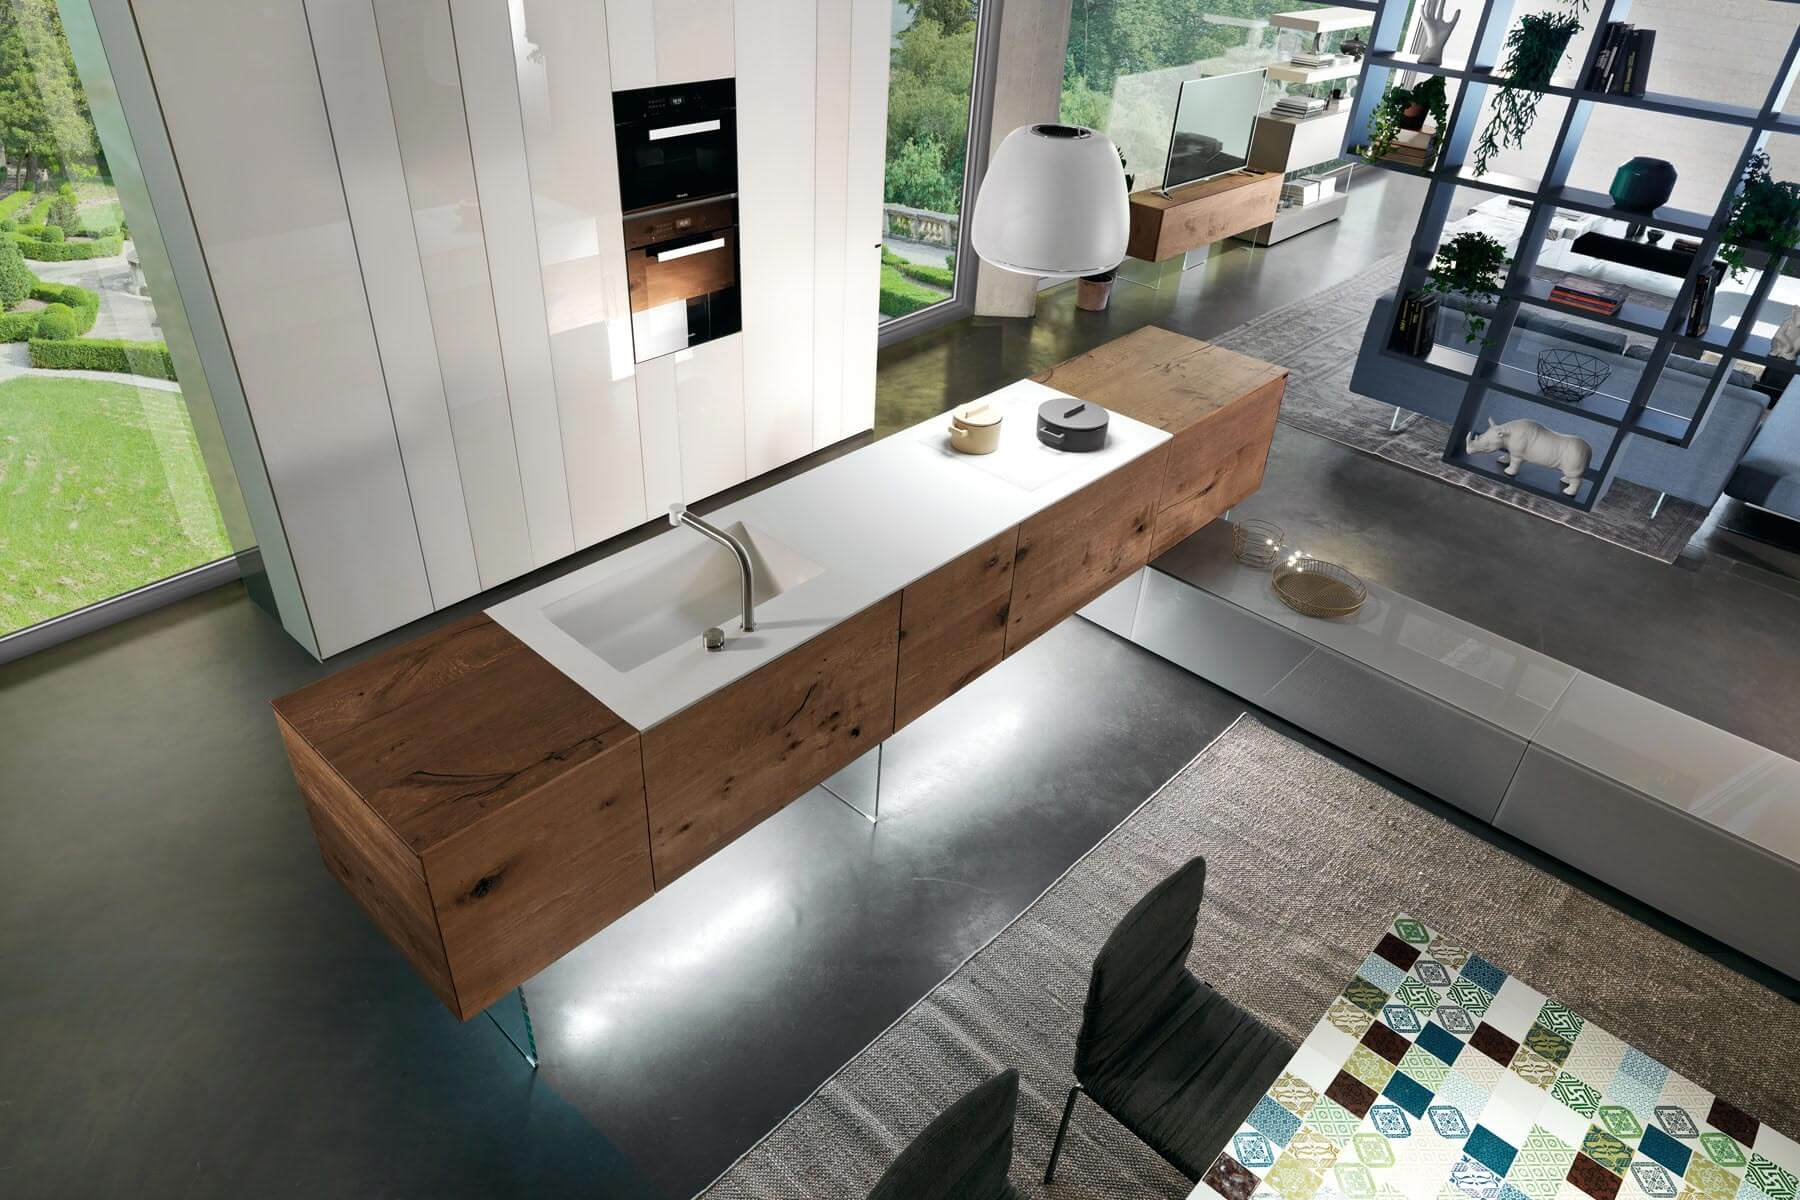 Cucina The Kitchen Company 36e8 Kitchen A Modular Kitchen Tailored To Your Space Lago Design